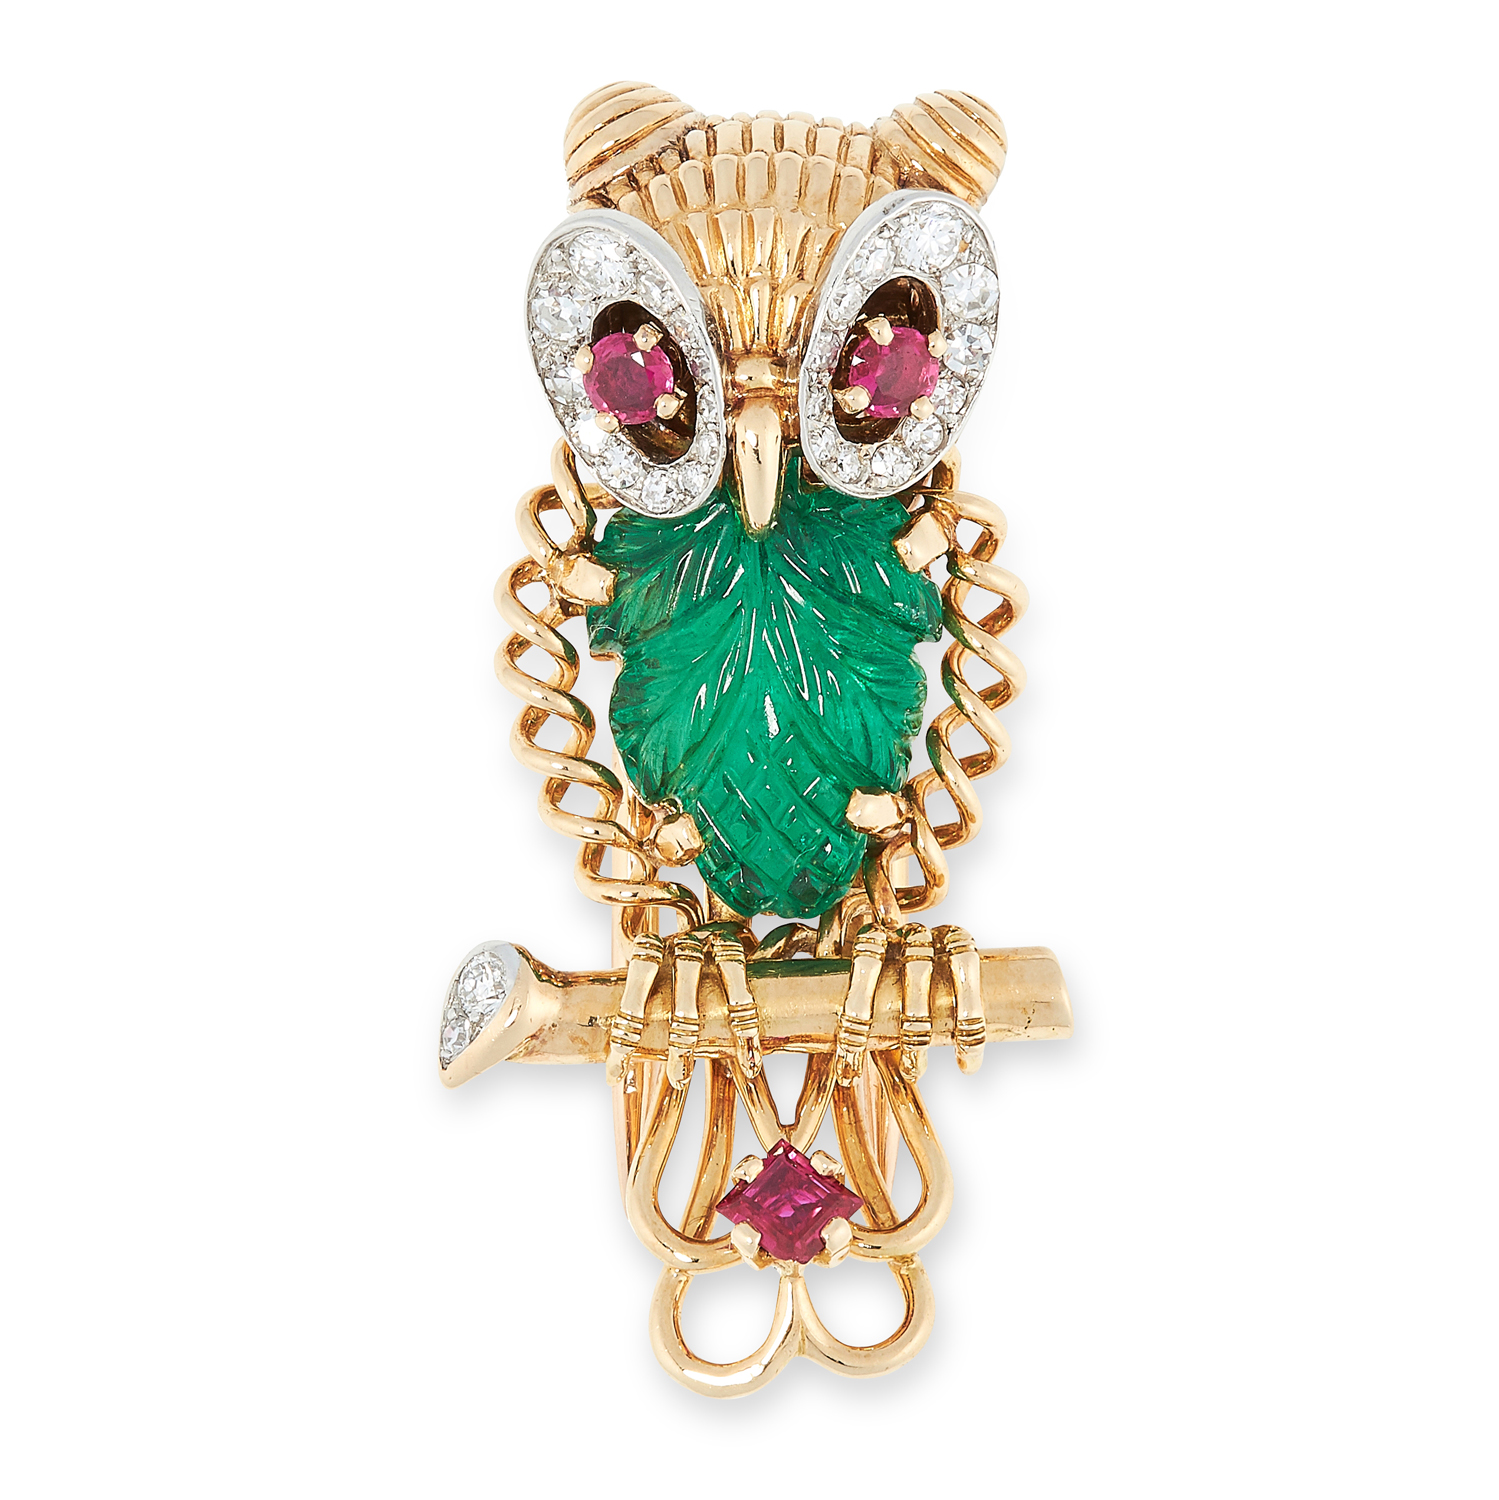 A VINTAGE EMERALD, RUBY AND DIAMOND OWL BROOCH, CARTIER CIRCA 1950 in 18ct yellow gold, designed